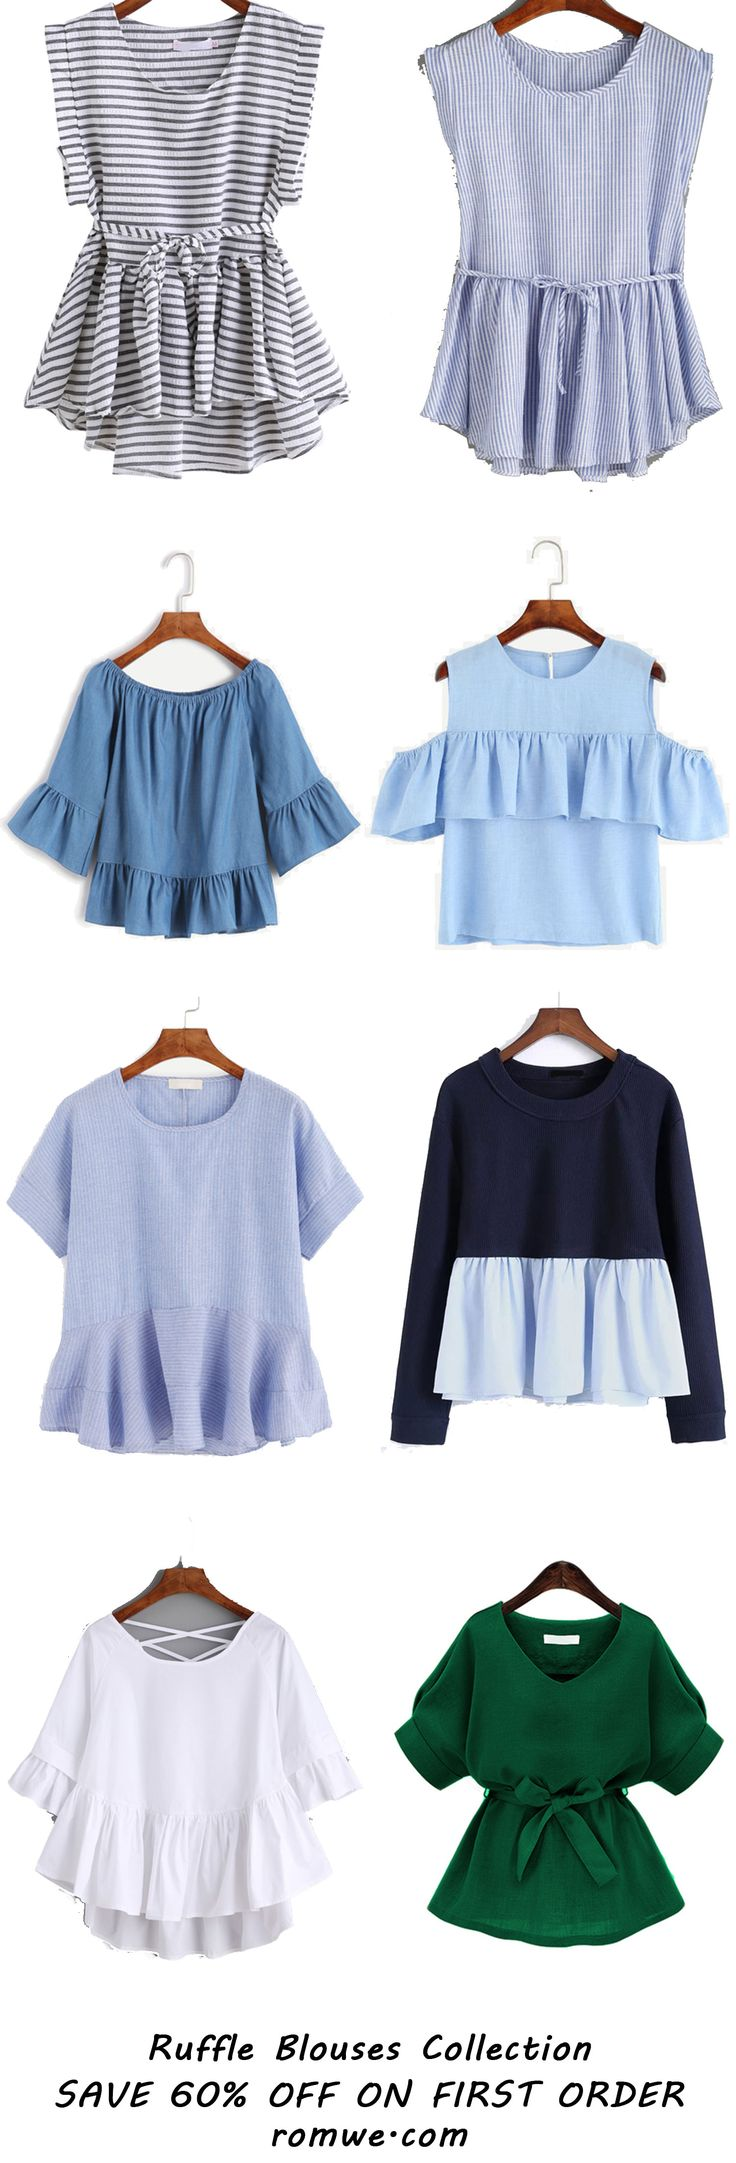 Cute Ruffle Blouses Collection - romwe.com (Top Outfit Preppy)